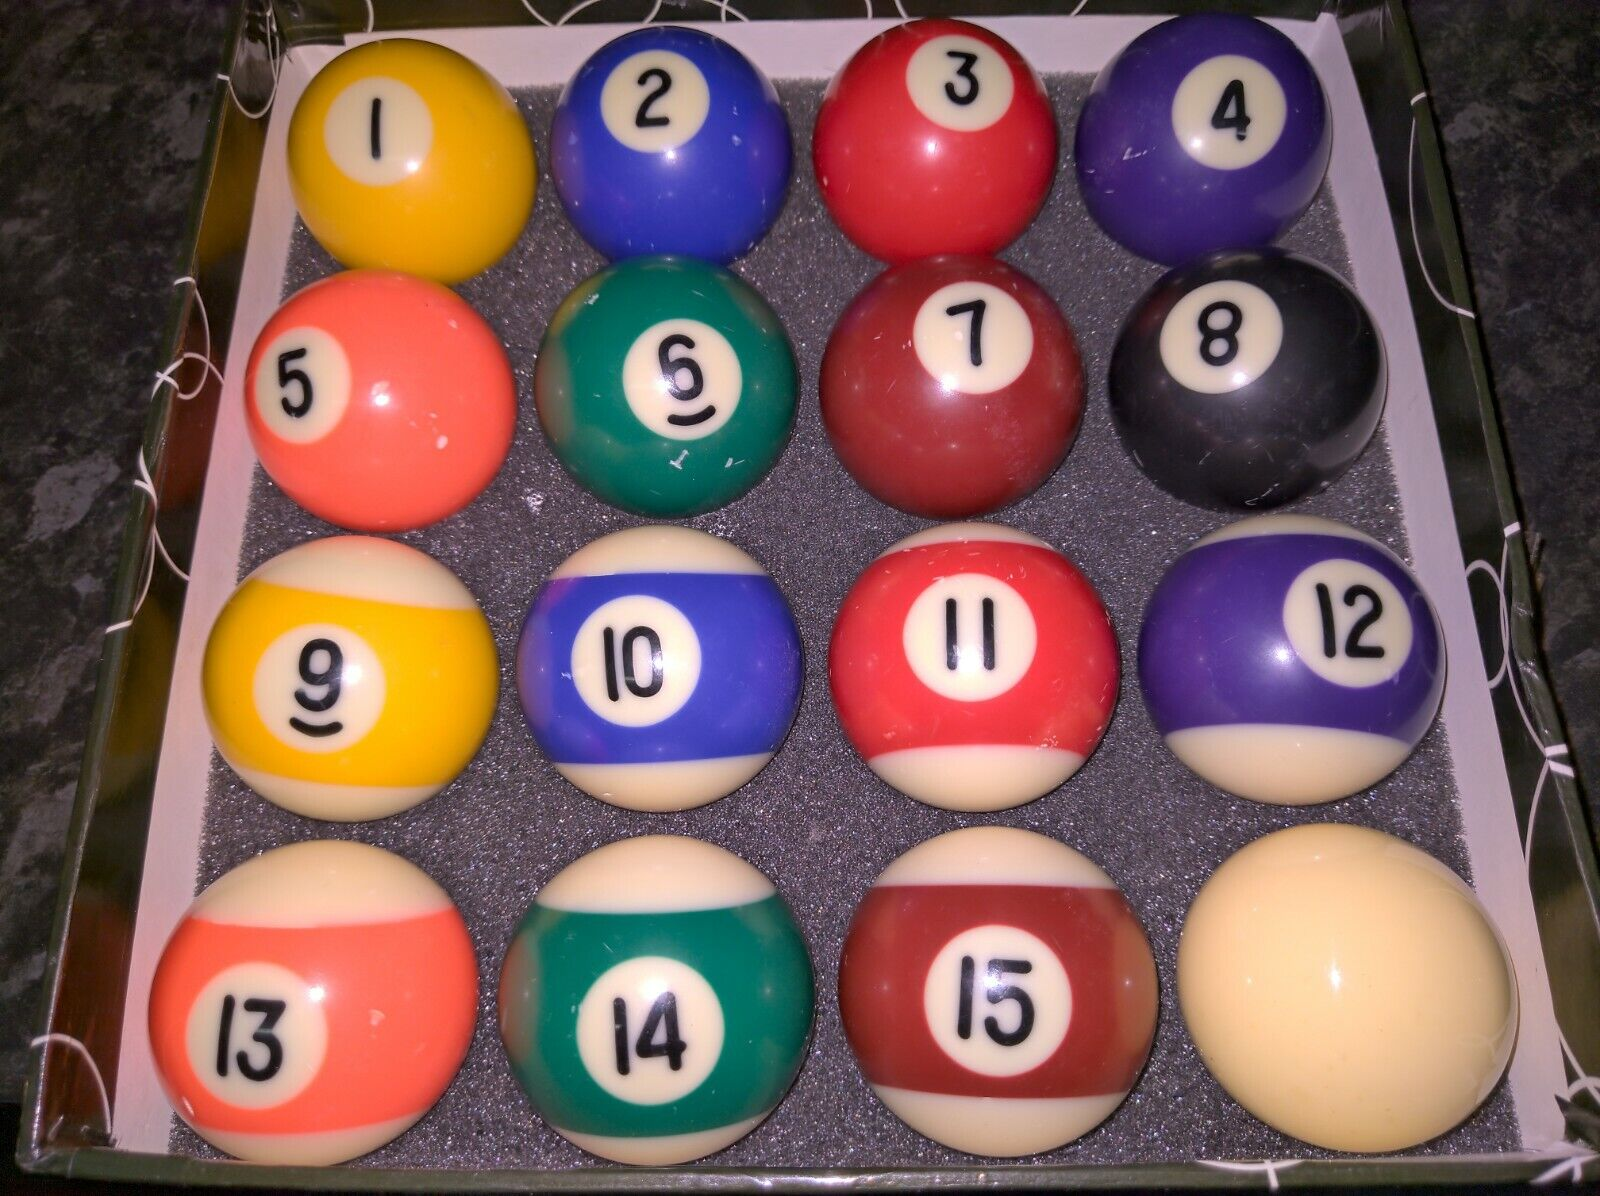 16 2 Sports and Stripes Pool Ball Set